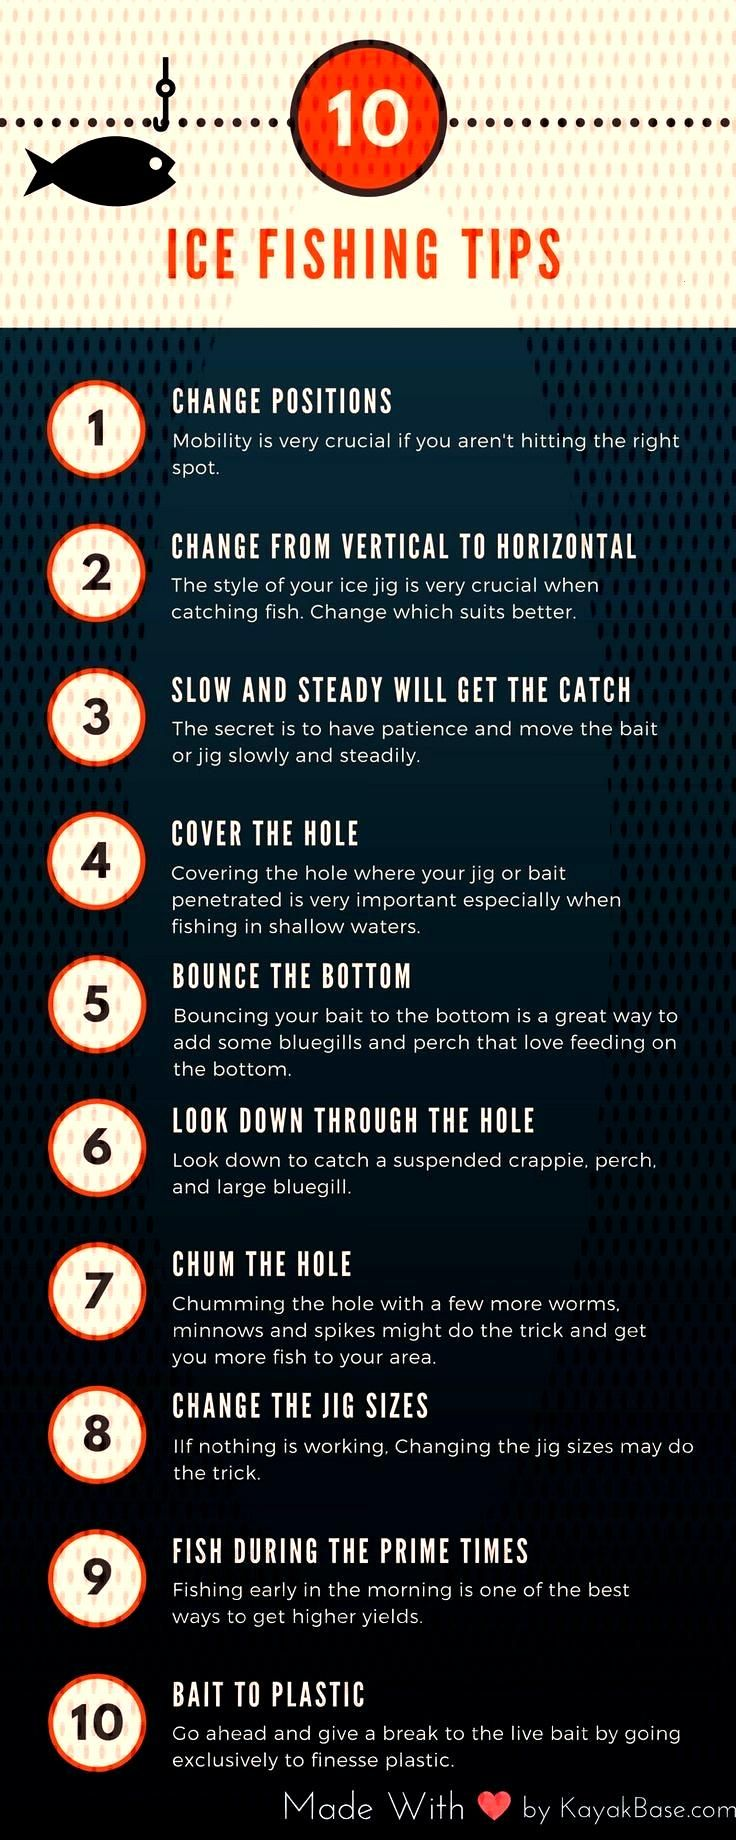 Best Ice Fishing Tips infographic